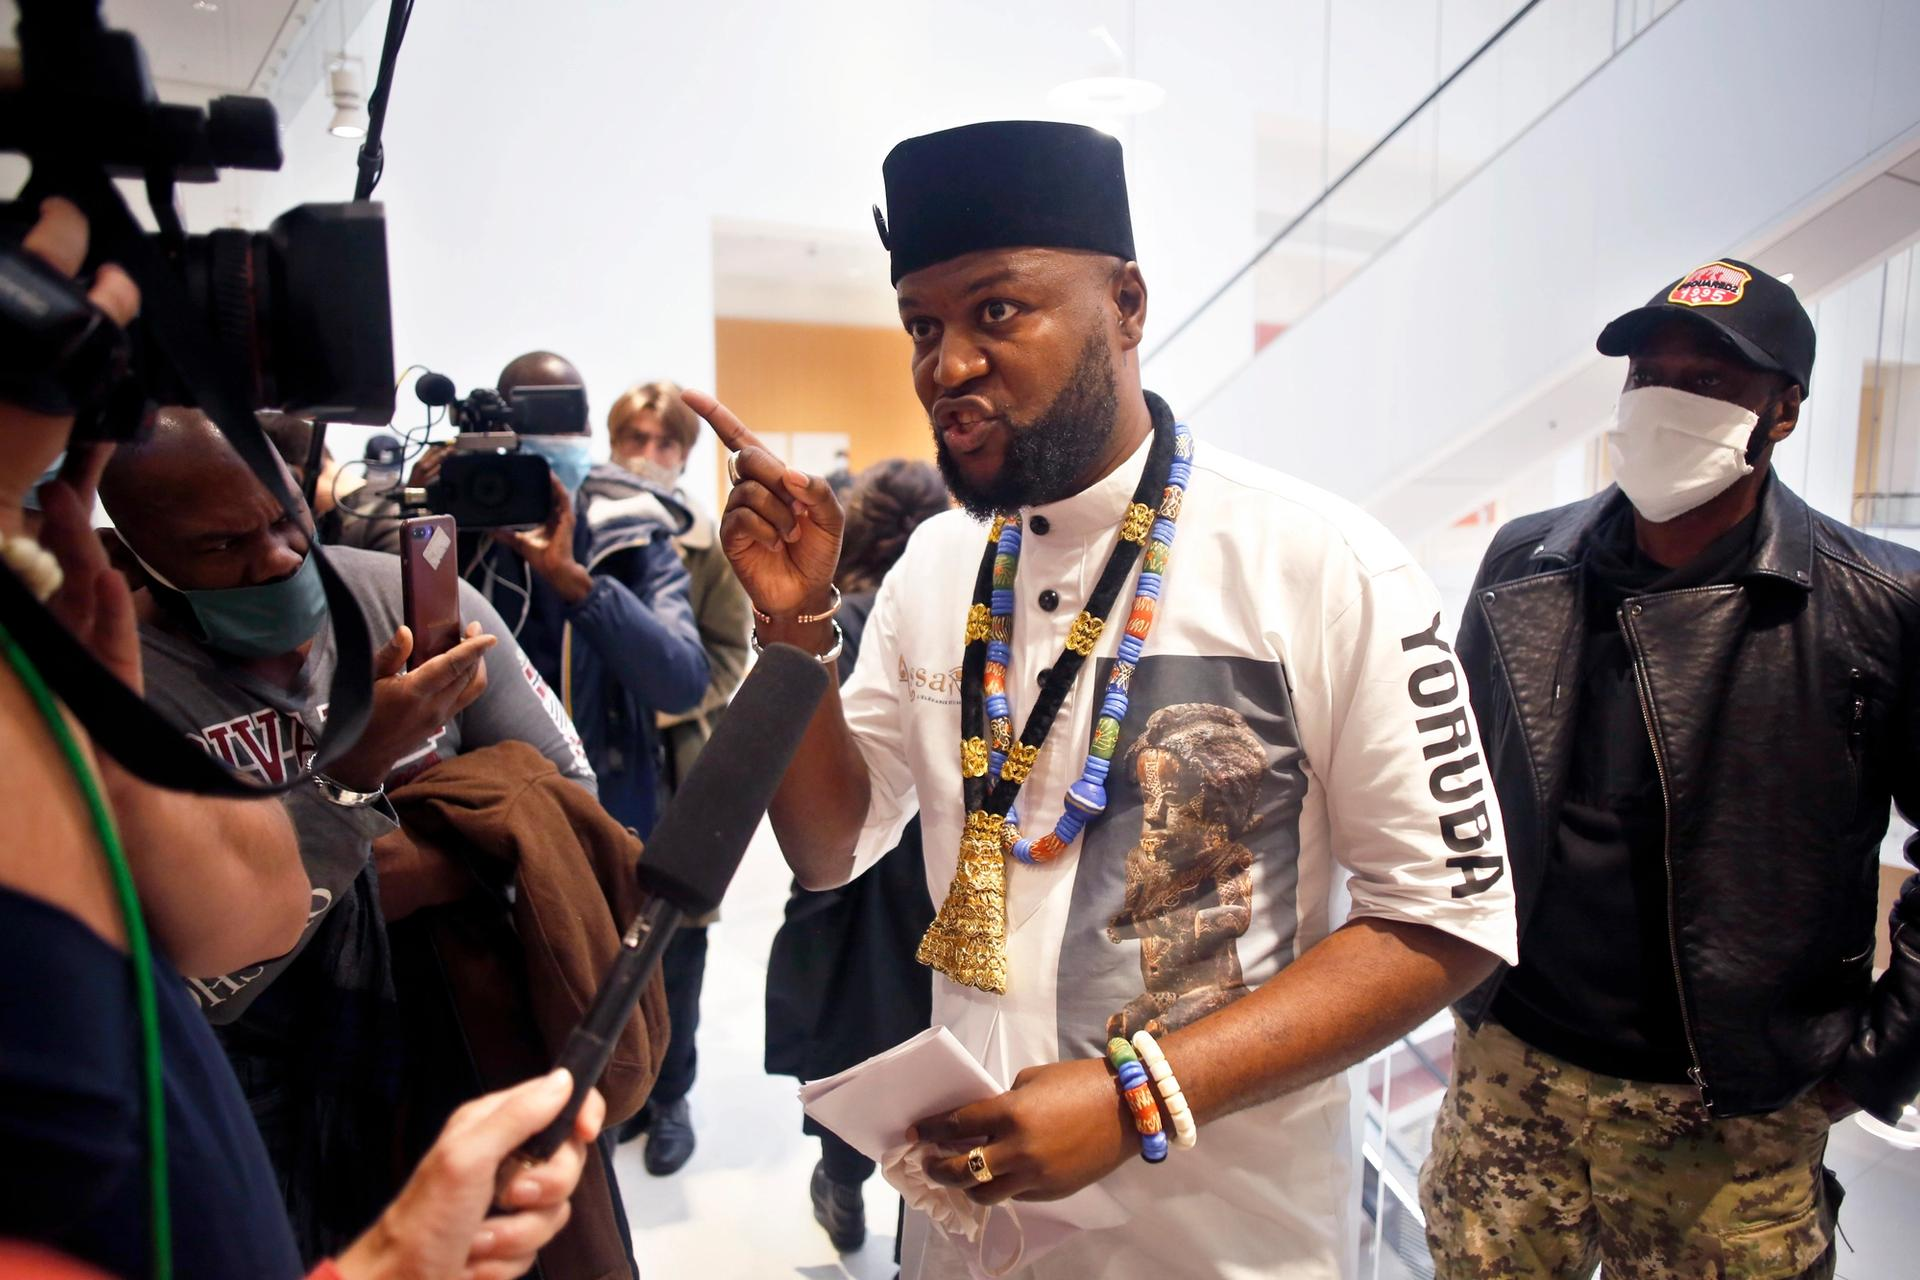 The Congolese activist Emery Mwazulu Diyabanza speaks to the media at the Palais de Justice courthouse, in Paris, where he and others are on trial on aggravated theft charges for trying to remove a 19th century African funeral pole from a Paris museum, in a protest against colonial-era plundering of African art © AP Photo/Thibault Camus